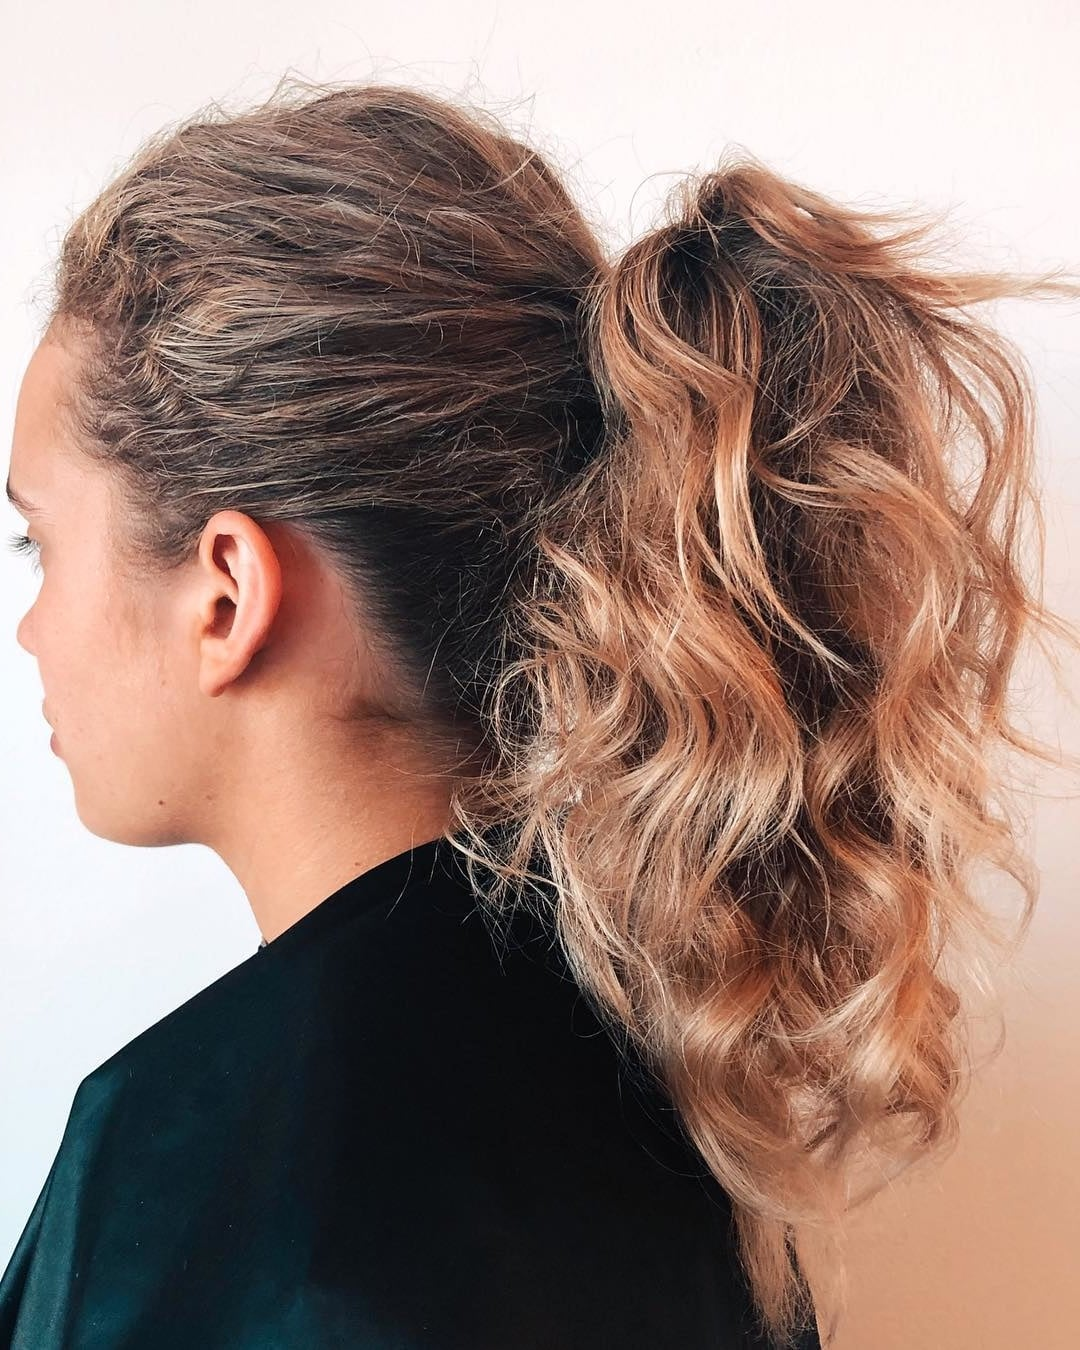 hairstyles for short hair ponytail